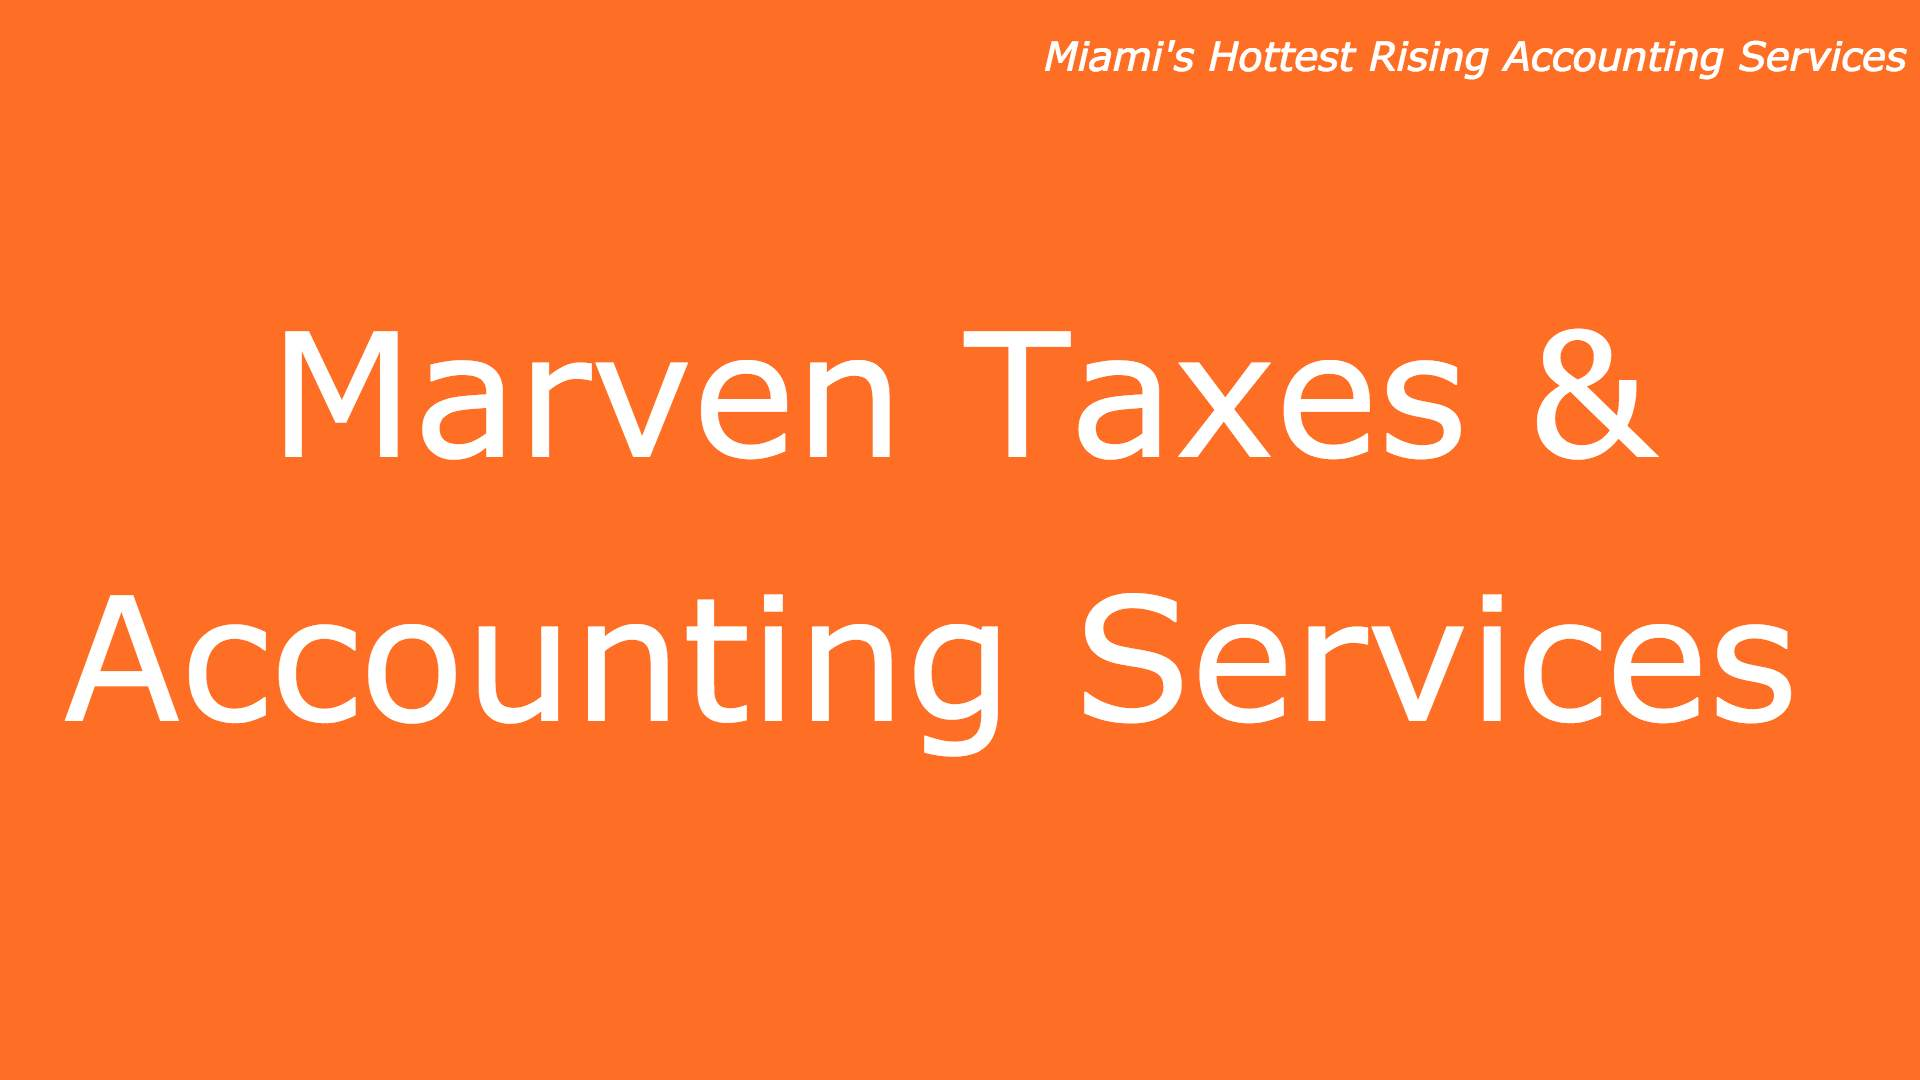 HOTTEST MIAMI BUSINESSES ON THE RISE: MARVEN TAXES & ACCOUNTING SERVICES